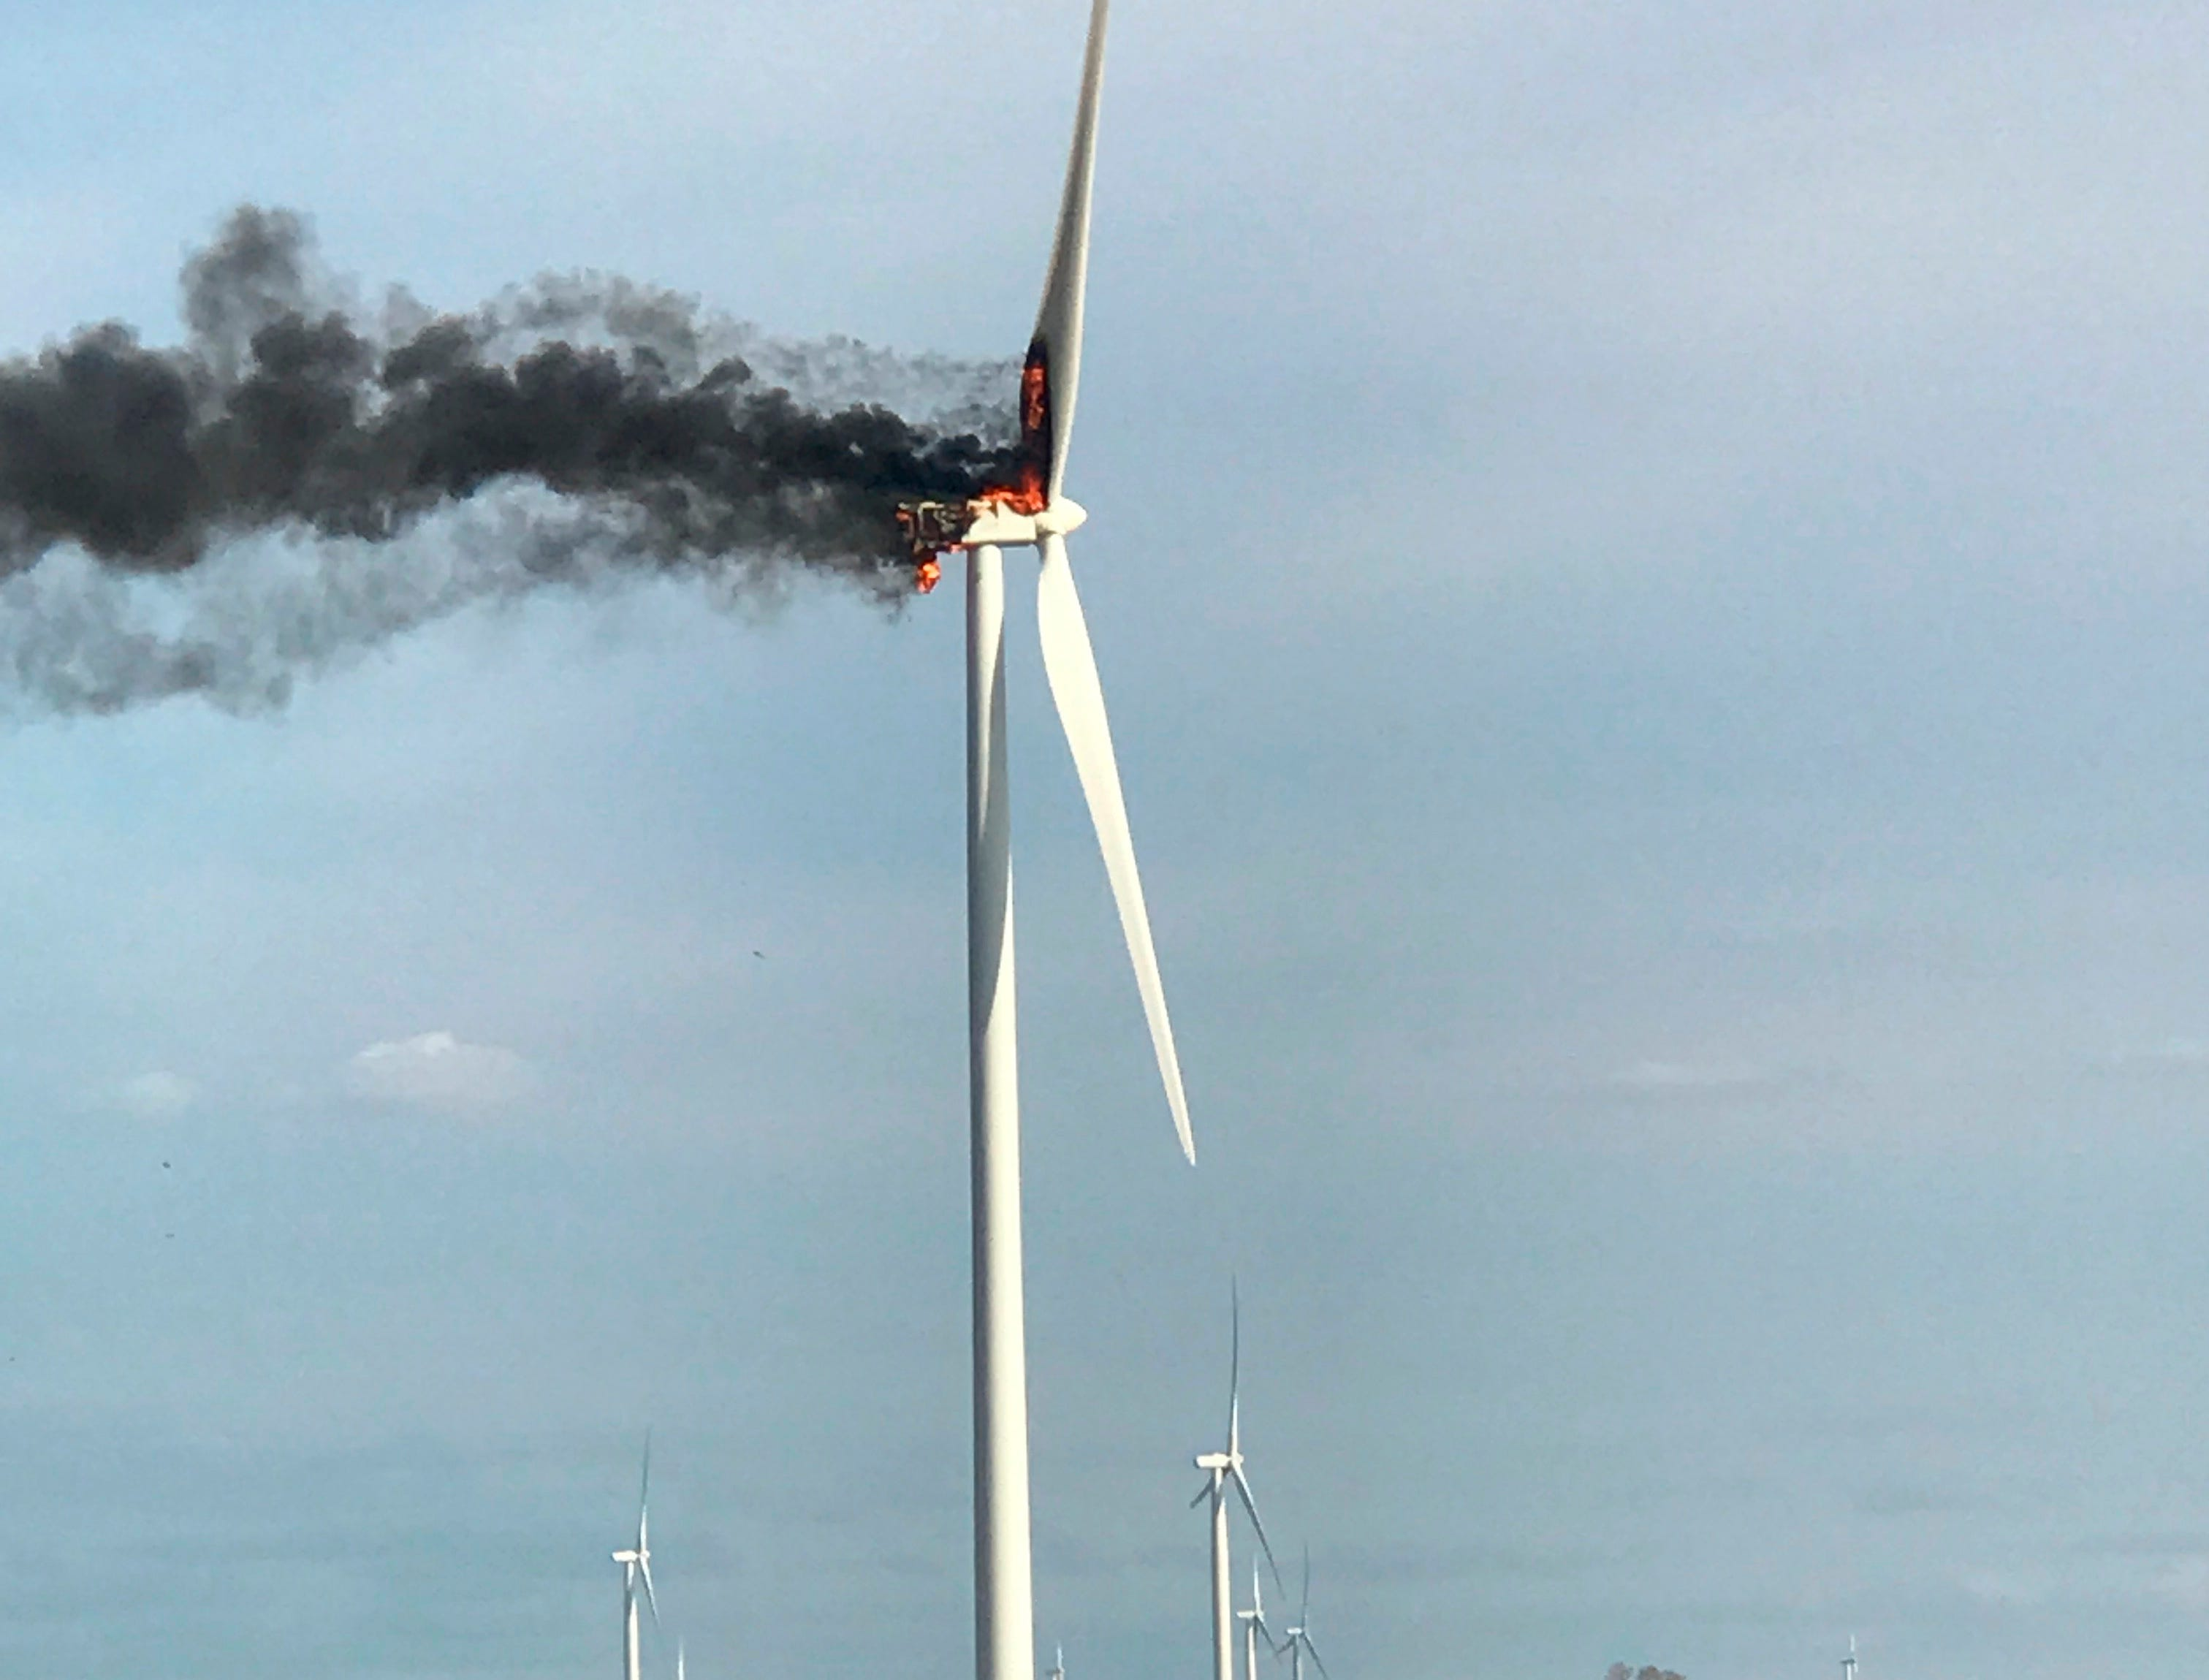 A fire burns at a wind turbine on Monday, April 1, 2019, near Elkton, Michigan. The fire drew spectators who watched flaming debris fall to the ground, but no injuries were reported. Crews let the fire burn itself out.